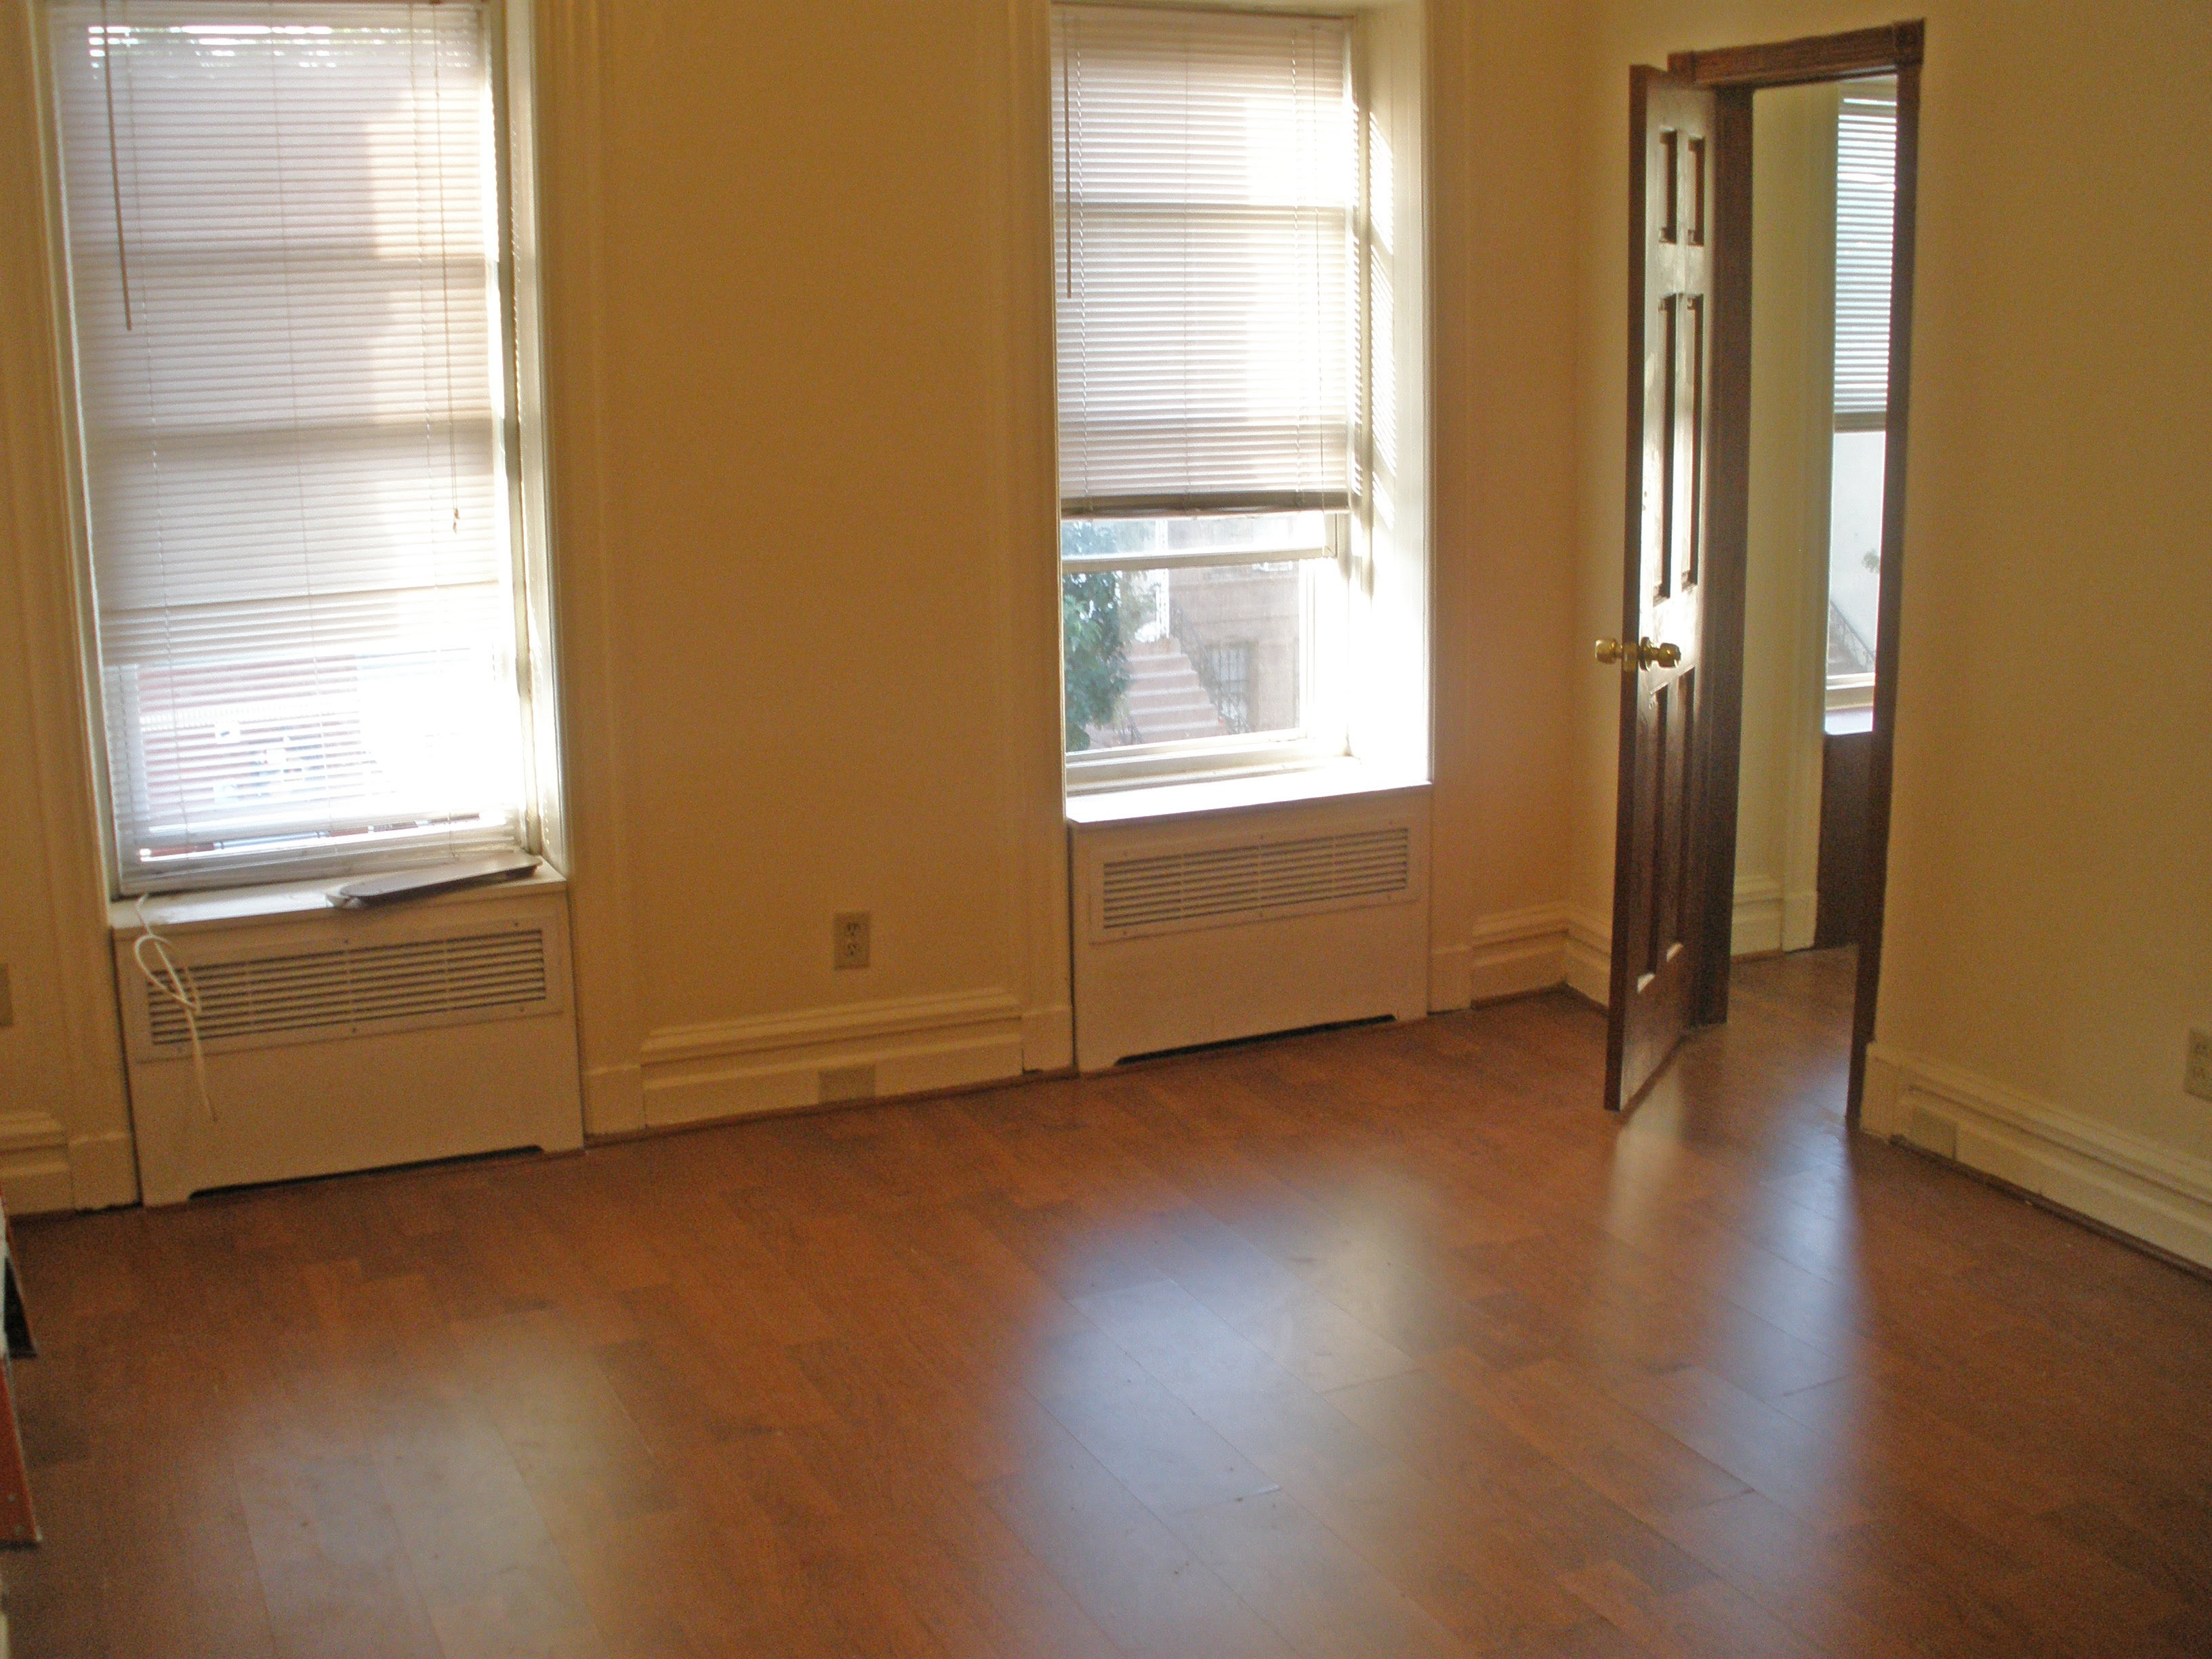 2 bedroom apartments for rent in chicago ciupa biksemad - 3 bedroom apartments for rent in chicago ...